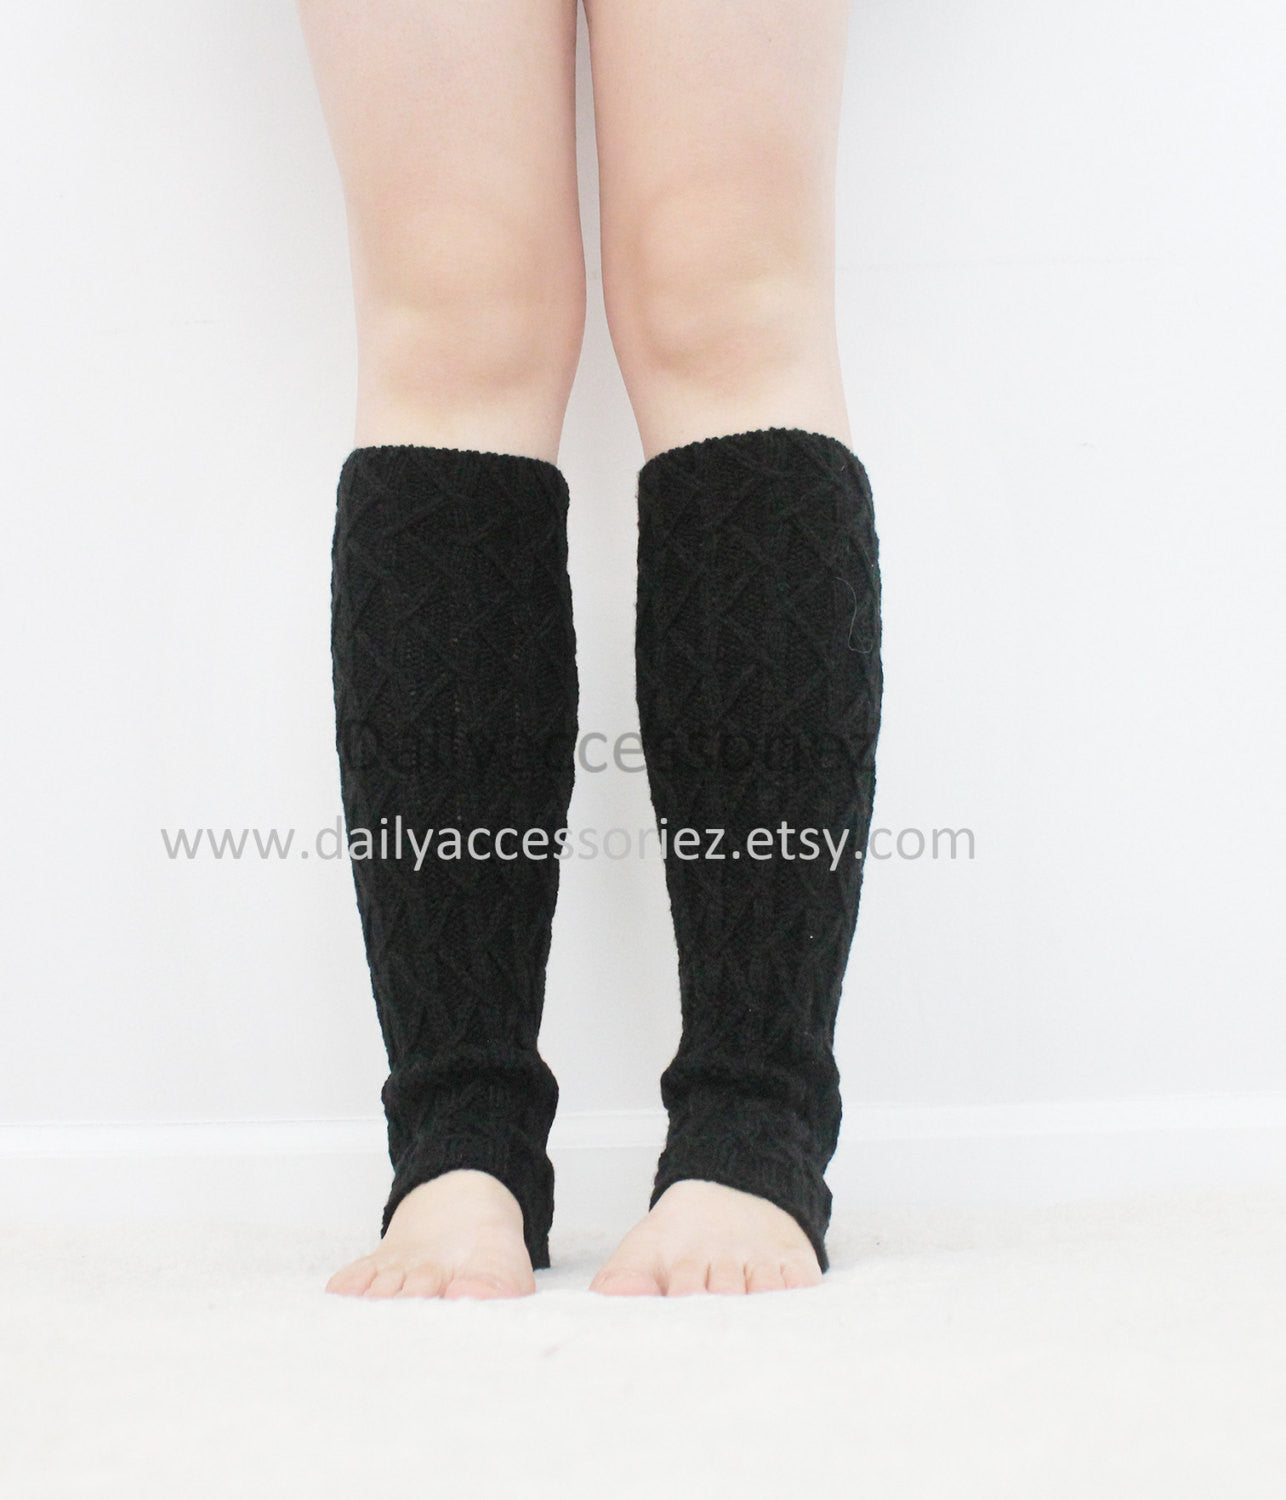 Cable knit womens leg warmers - Bean Concept - Etsy